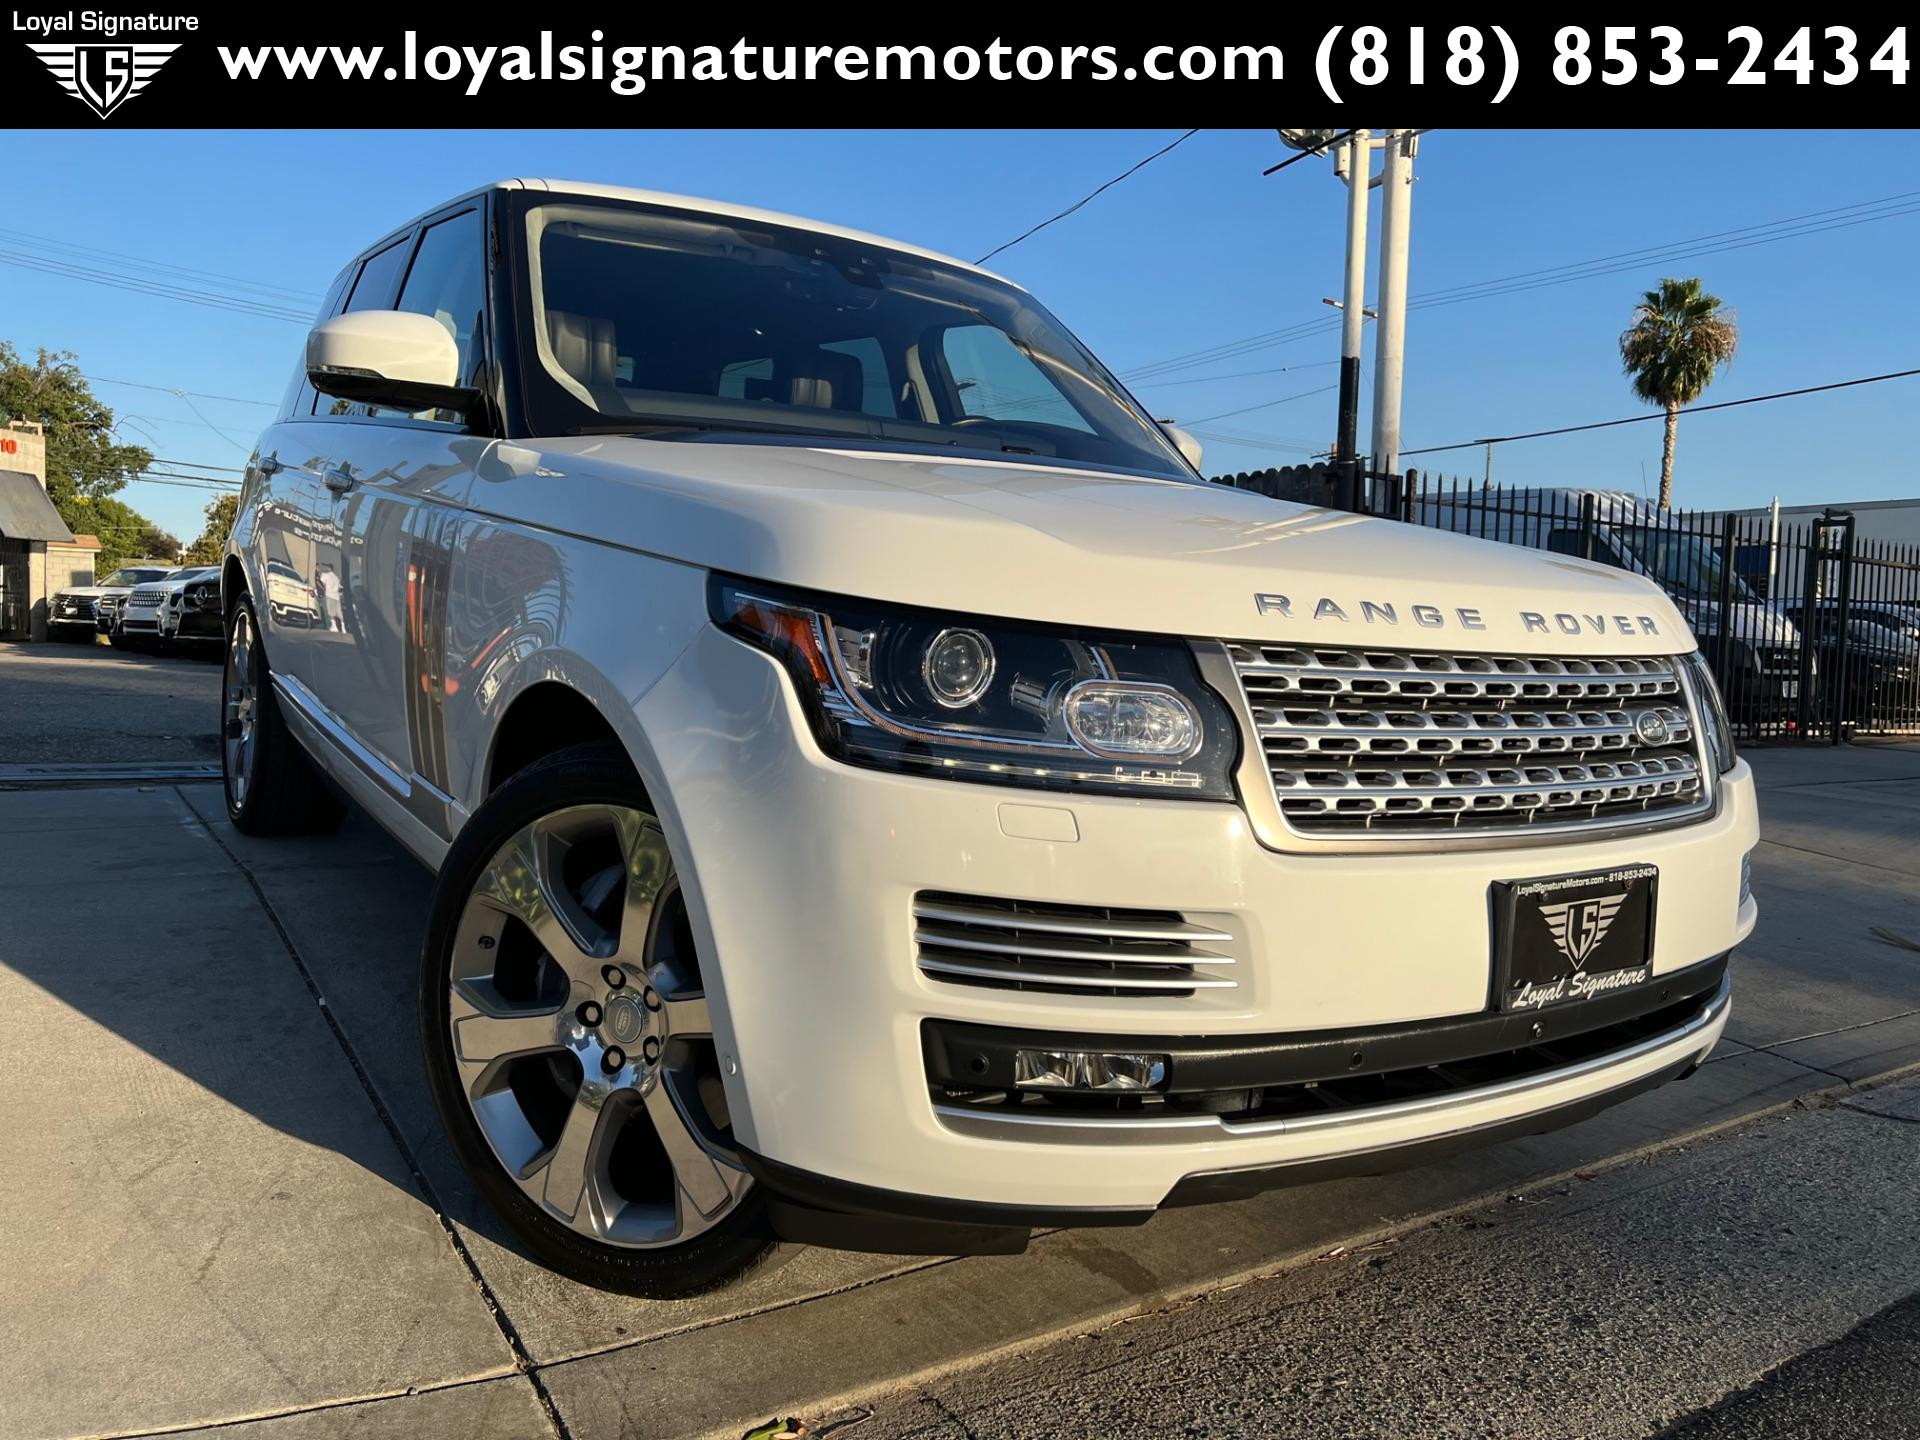 Used 2017 Land Rover Range Rover Autobiography   Van Nuys, CA